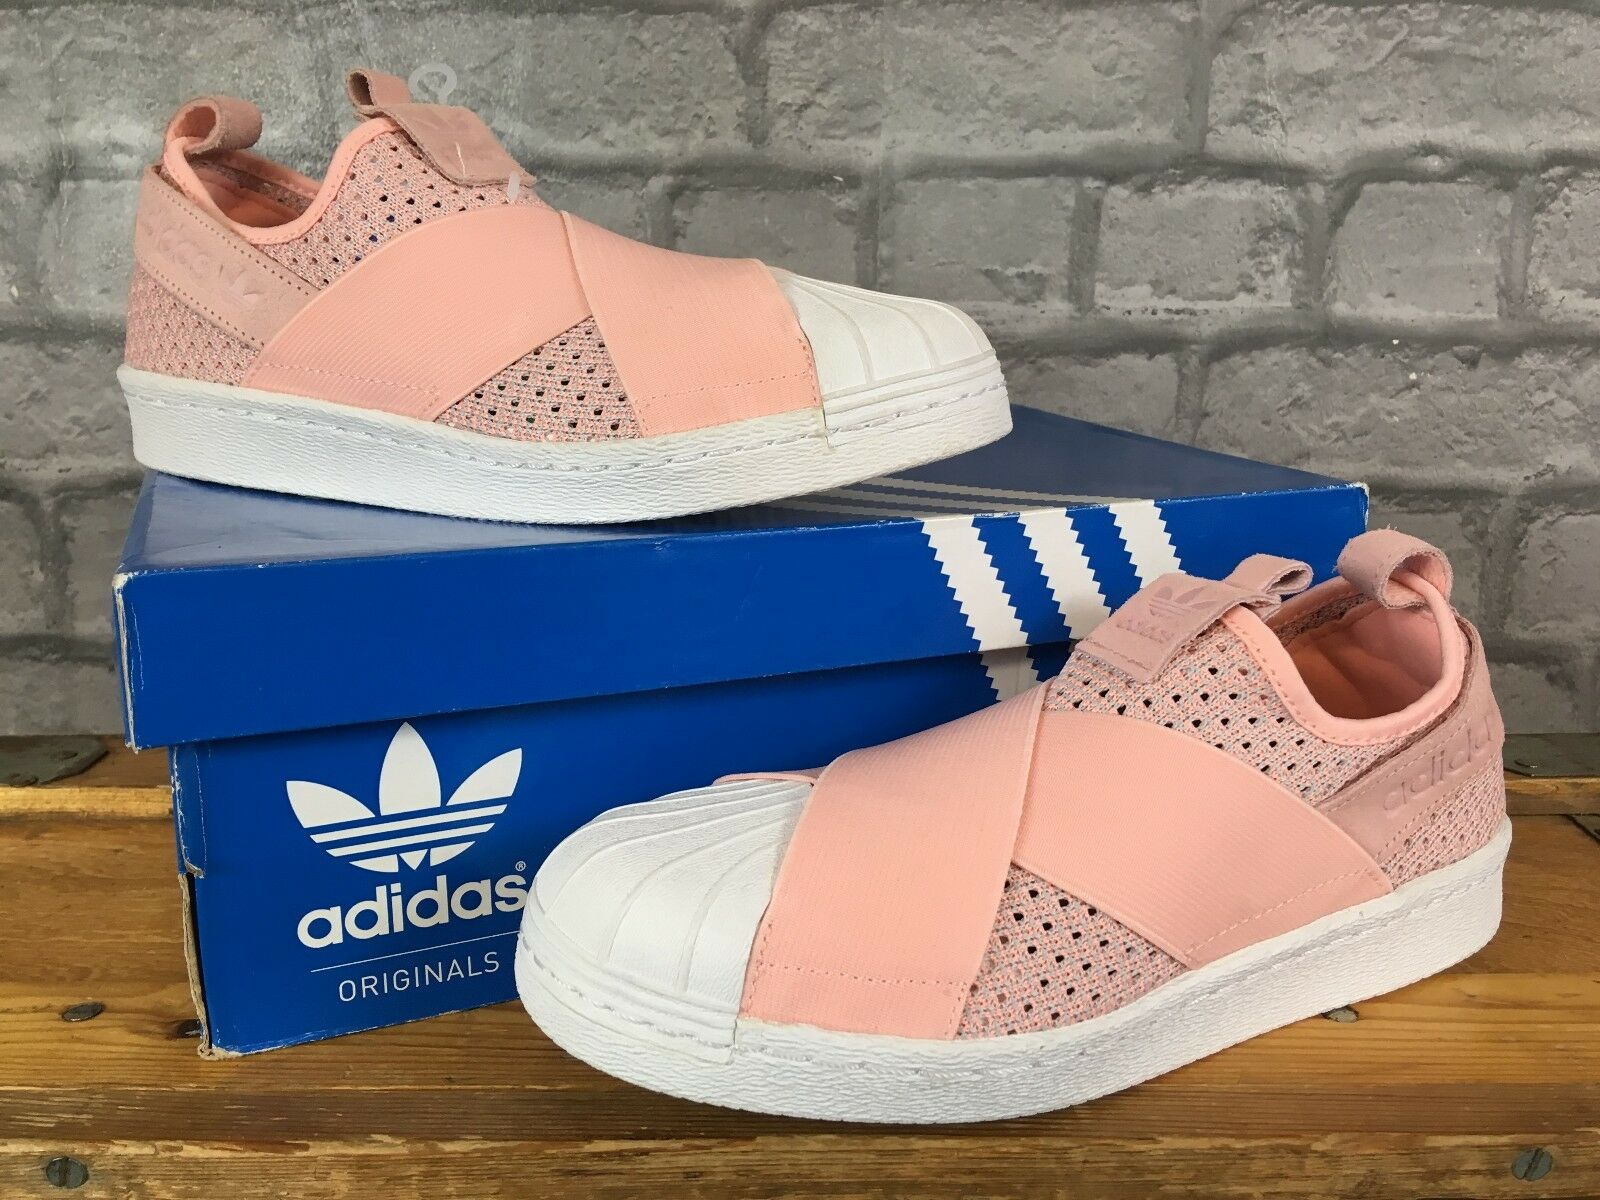 ADIDAS LADIES UK 8 EU 42 SUPERSTAR CORAL PINK PINK CORAL KNIT SLIP ON TRAINER ab816a